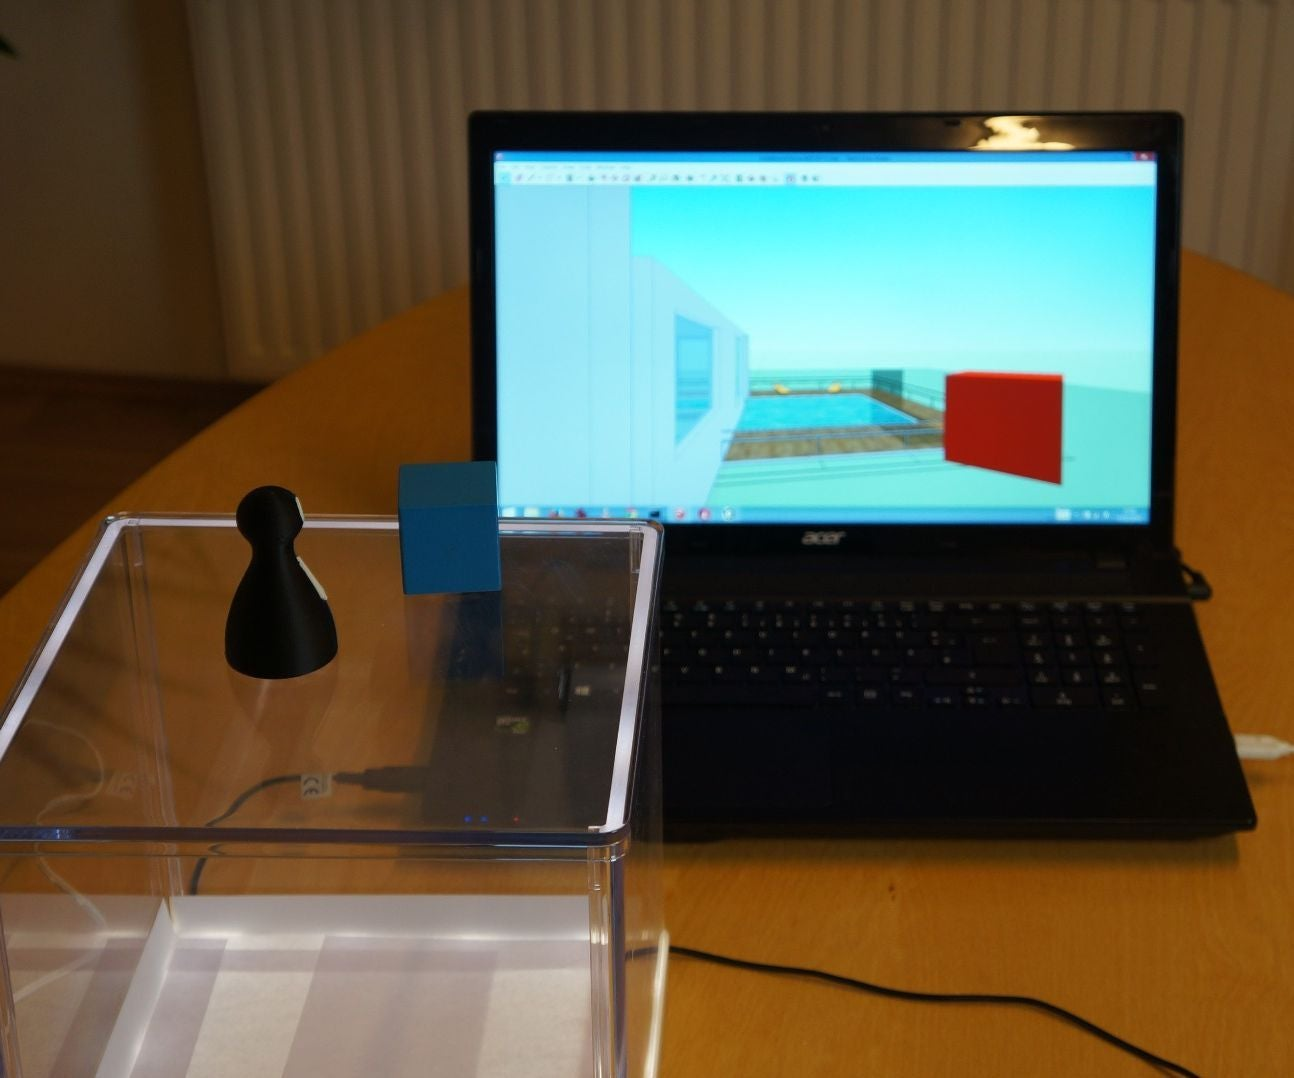 Interactive Table Ikea Synas Sketchup Edddison Lamp 6 Steps